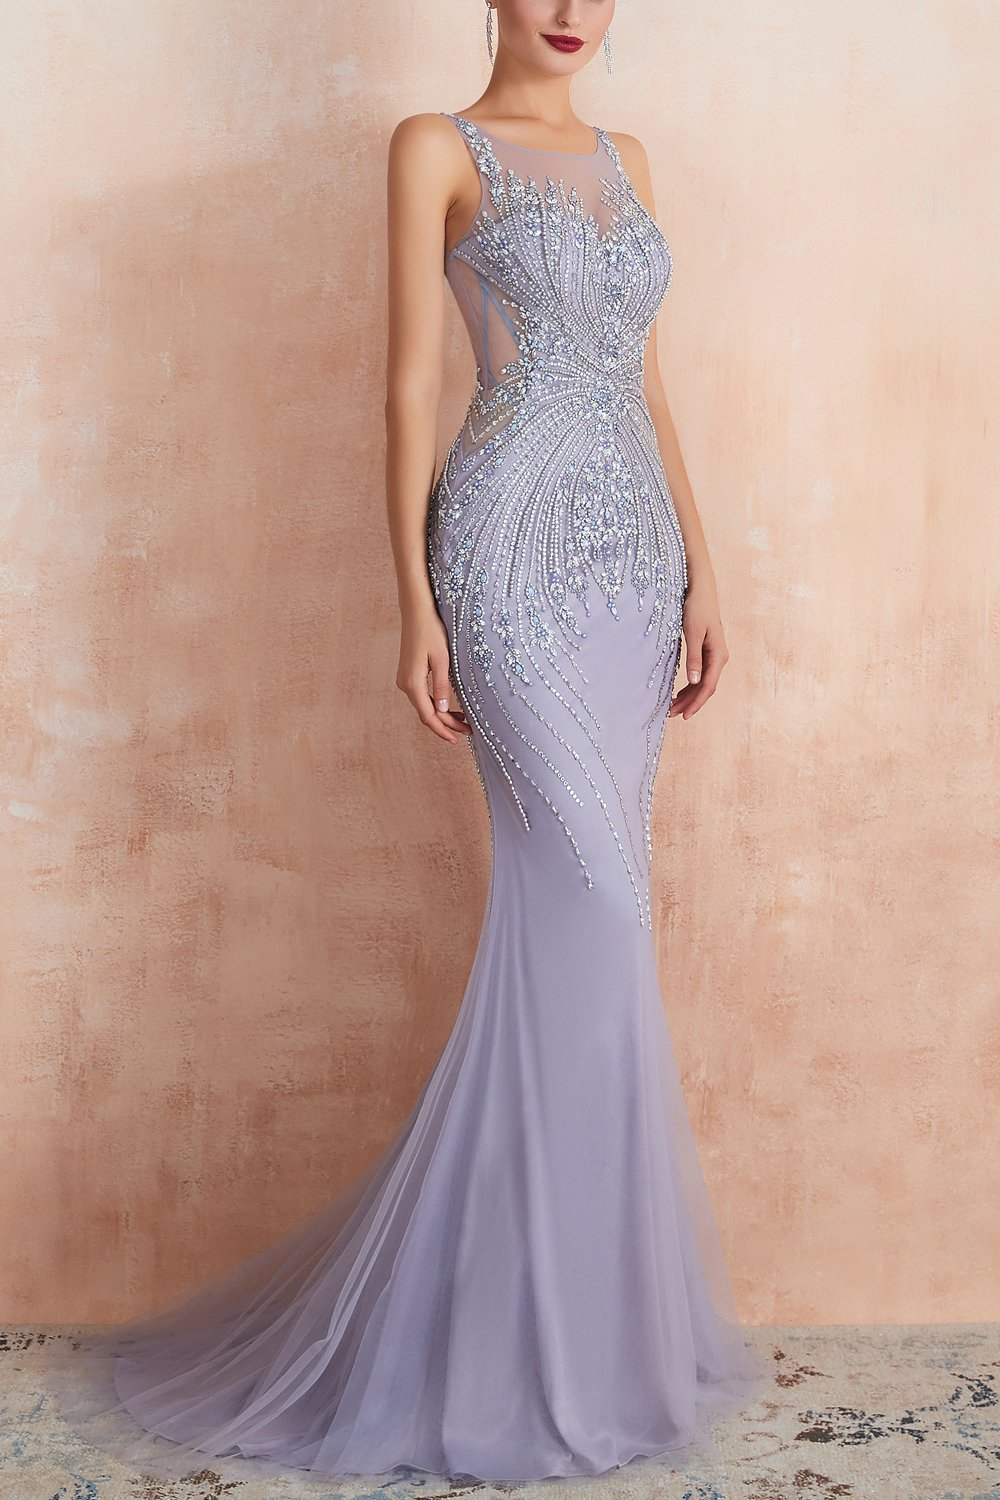 Mermaid Illusion Neck Prom Dress